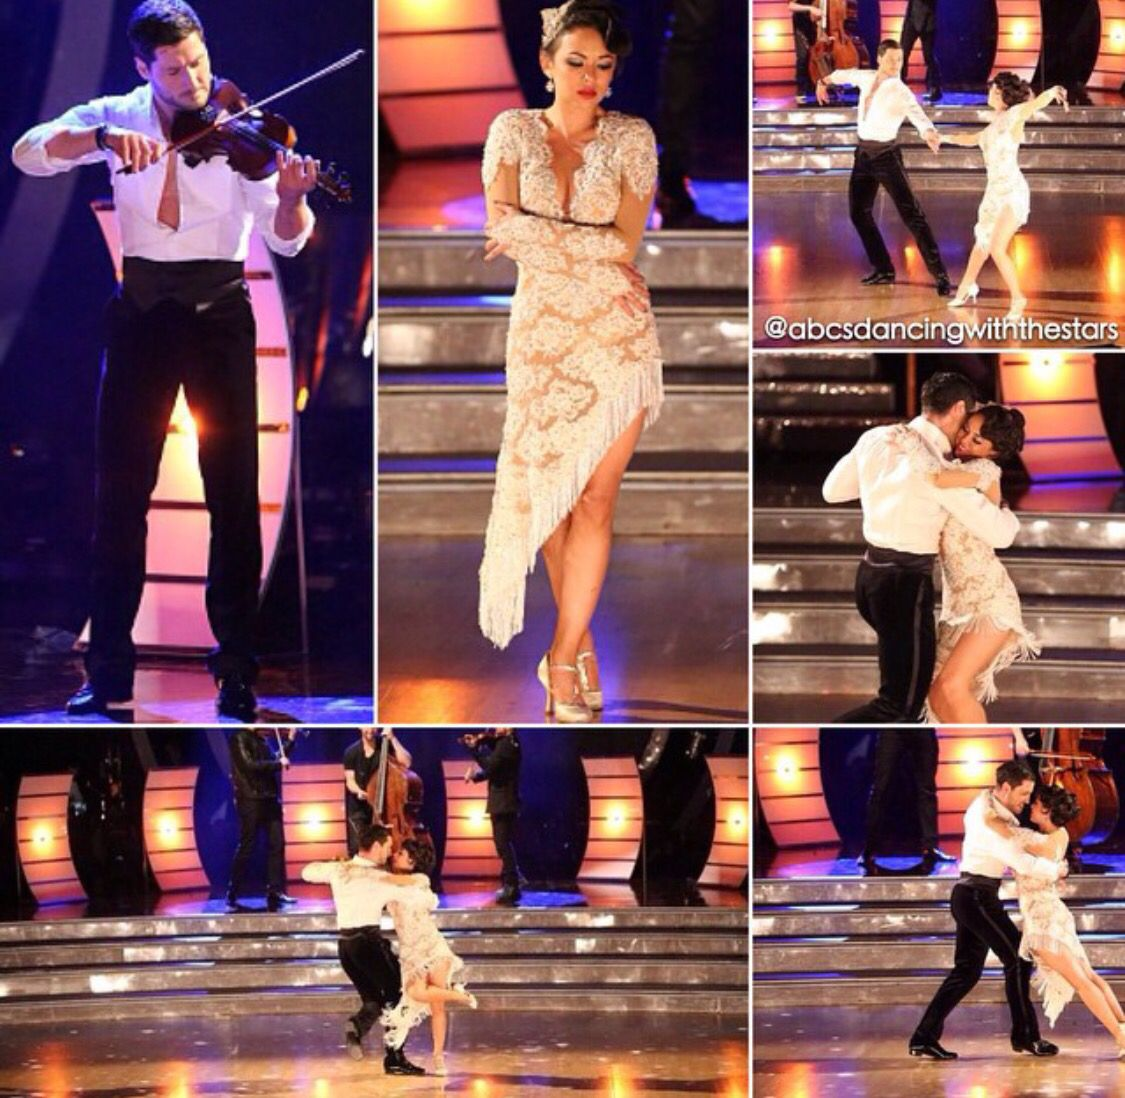 Val Chmerkovskiy & Janel  -  Dancing With the Stars  -  week 10  -  season 19  -   11/17/14  -  who knew Val was also a violinist